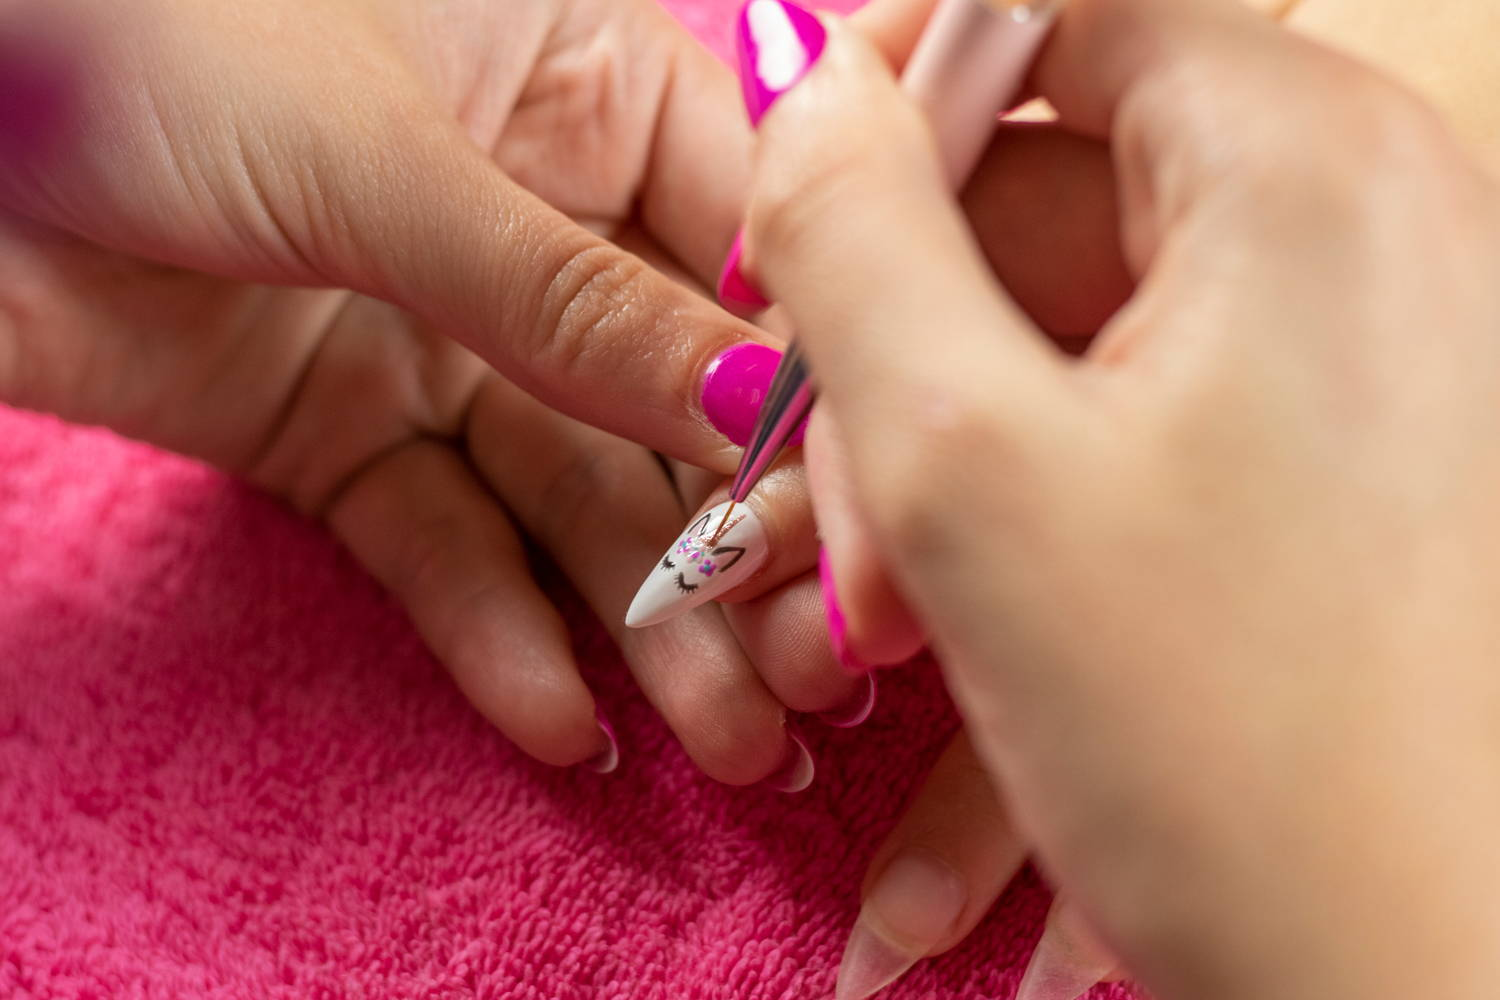 Unicorn nail art detail being painted onto a nail using ORLY GelFX Rage gel polish